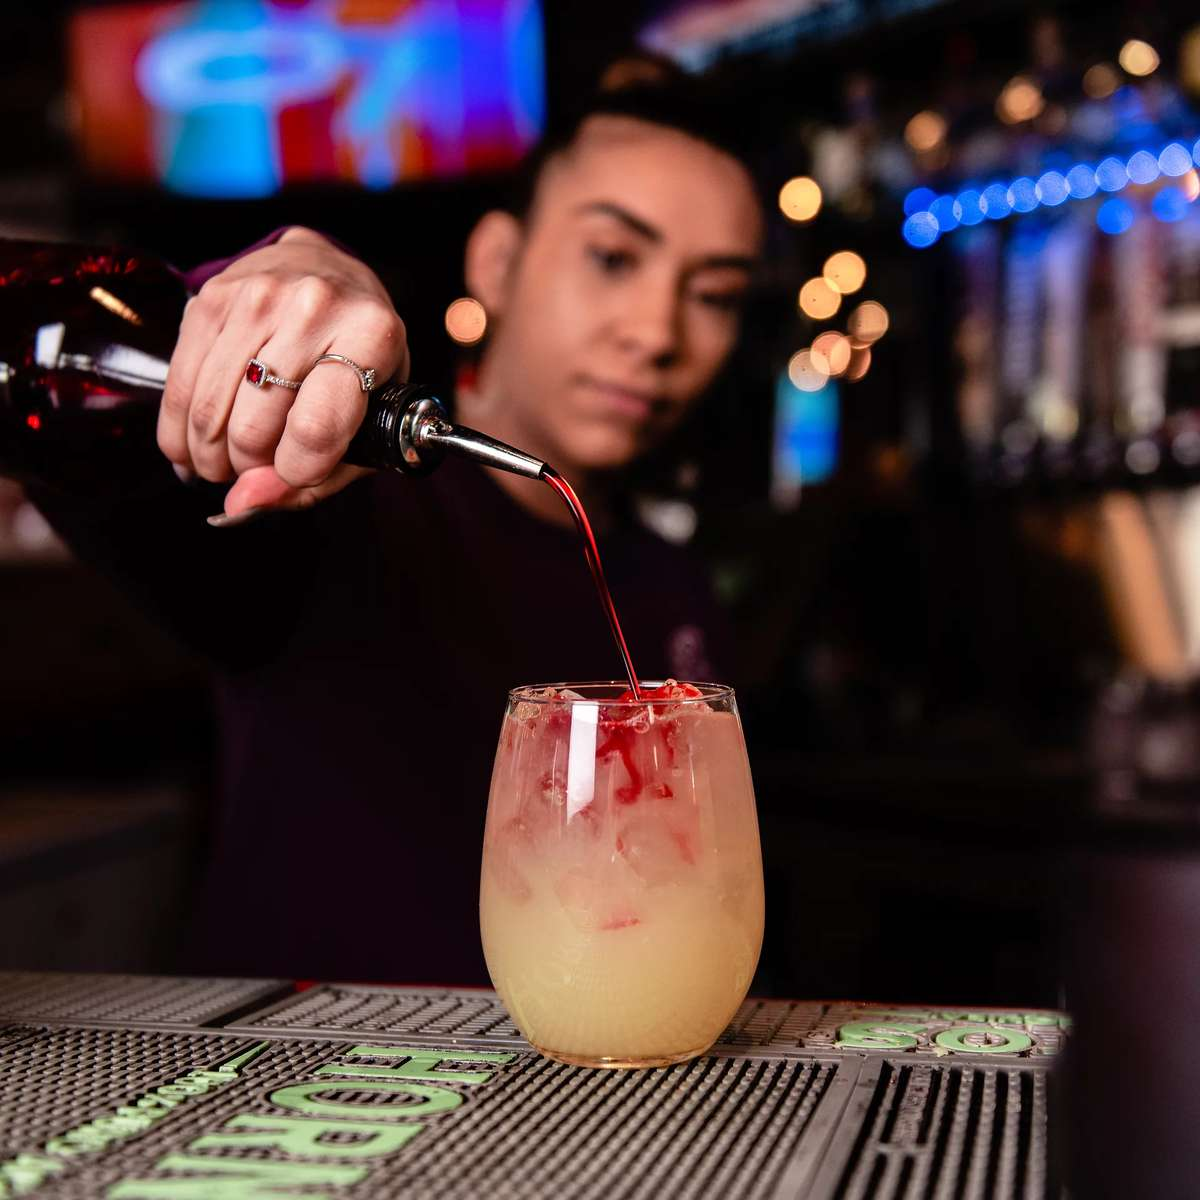 Bartender pouring a mixed drink